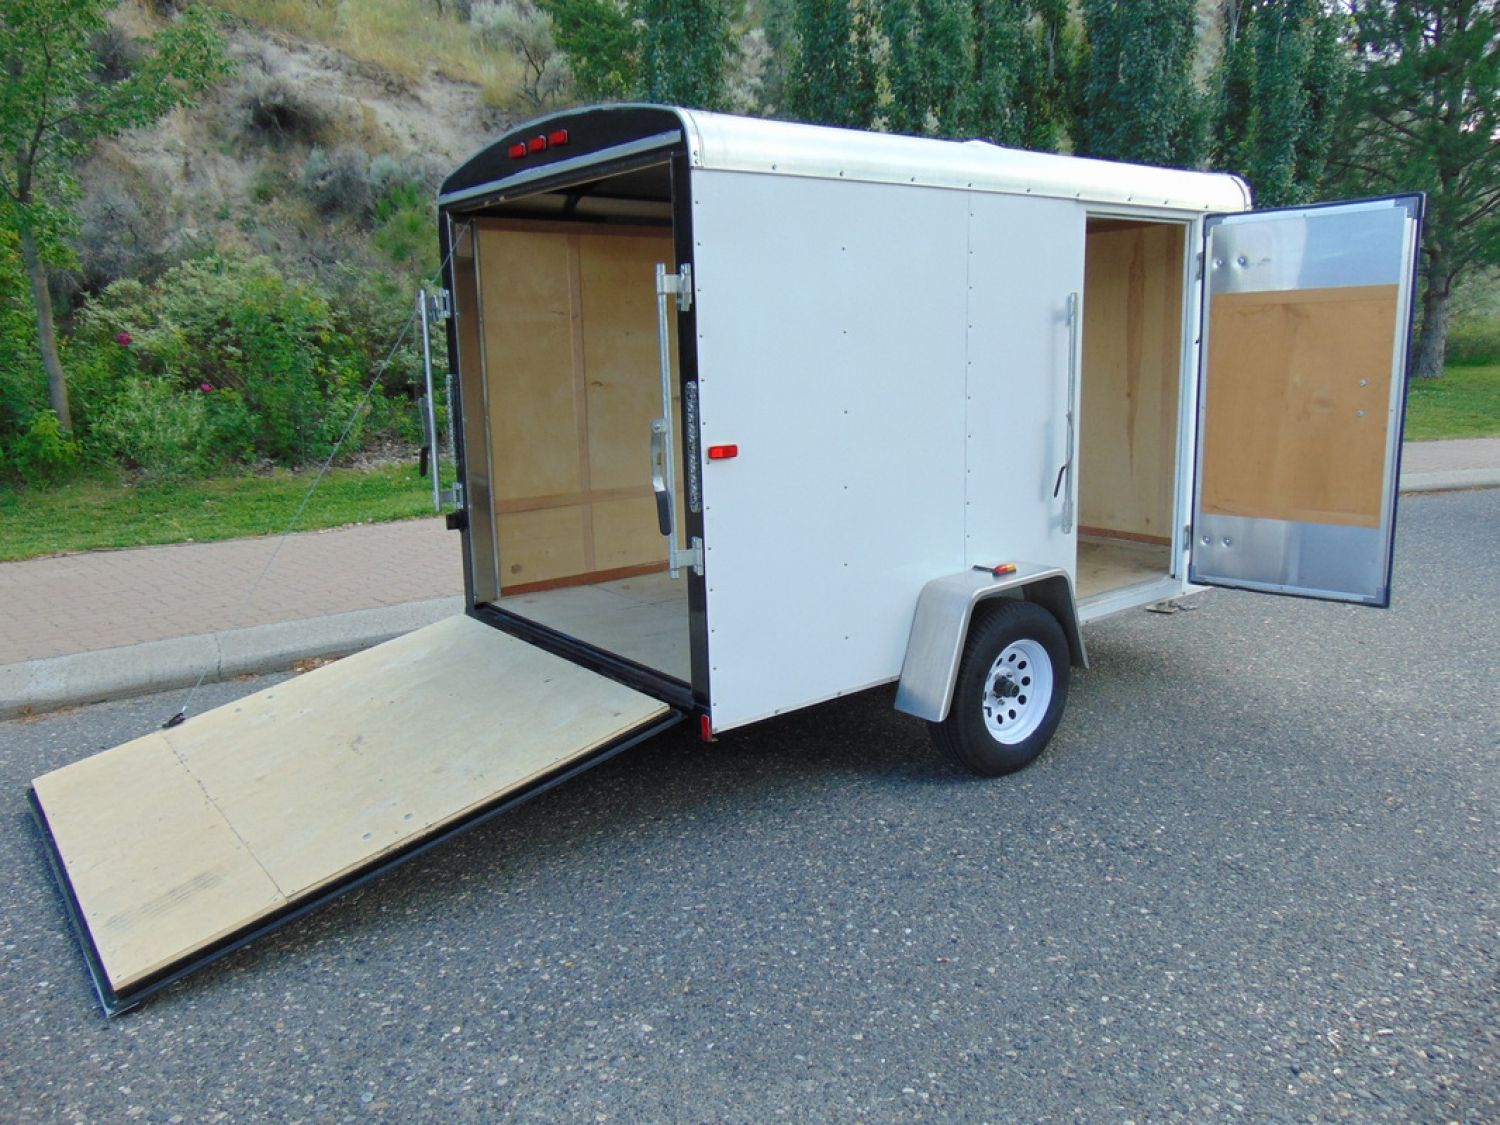 Small Cargo Trailers For Rent Small Covered Trailer Check More At Http Besthostingg Com Small Cargo Trailer Moving Trailers Cargo Trailers Covered Trailers